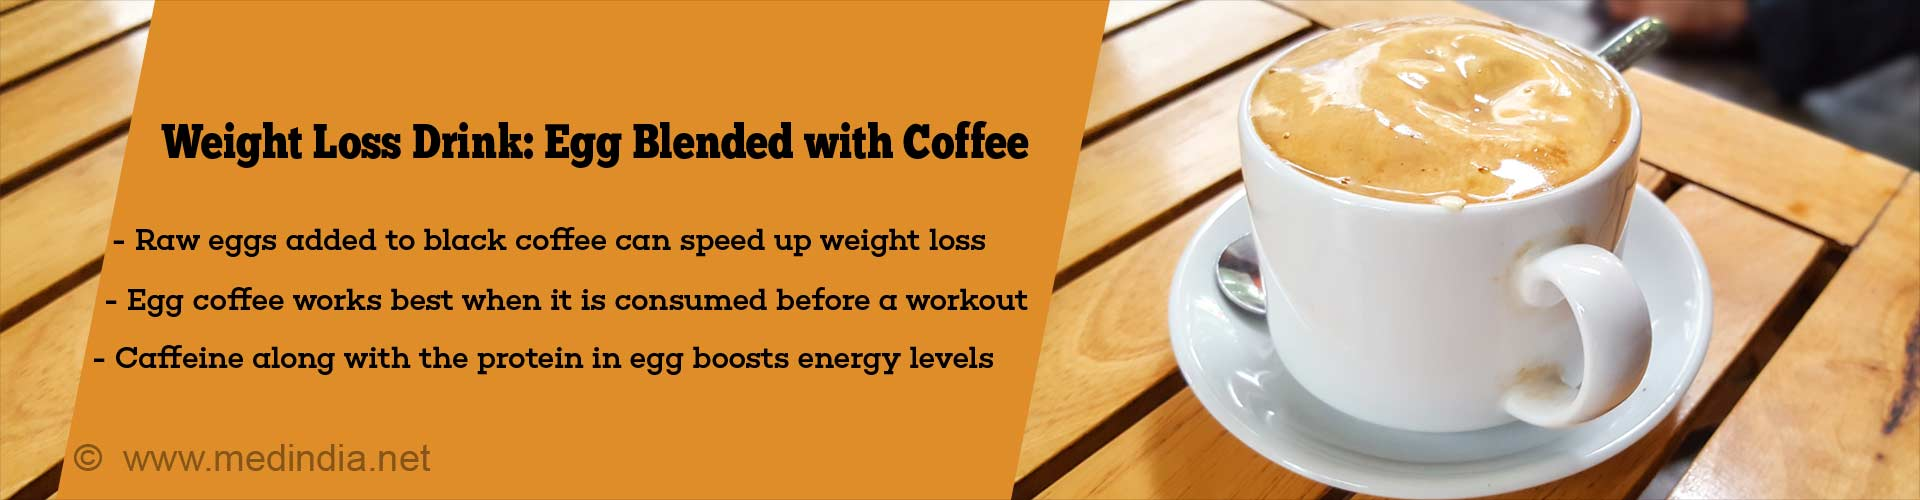 Secret Weight Loss Drink: Egg Blended With Black Coffee